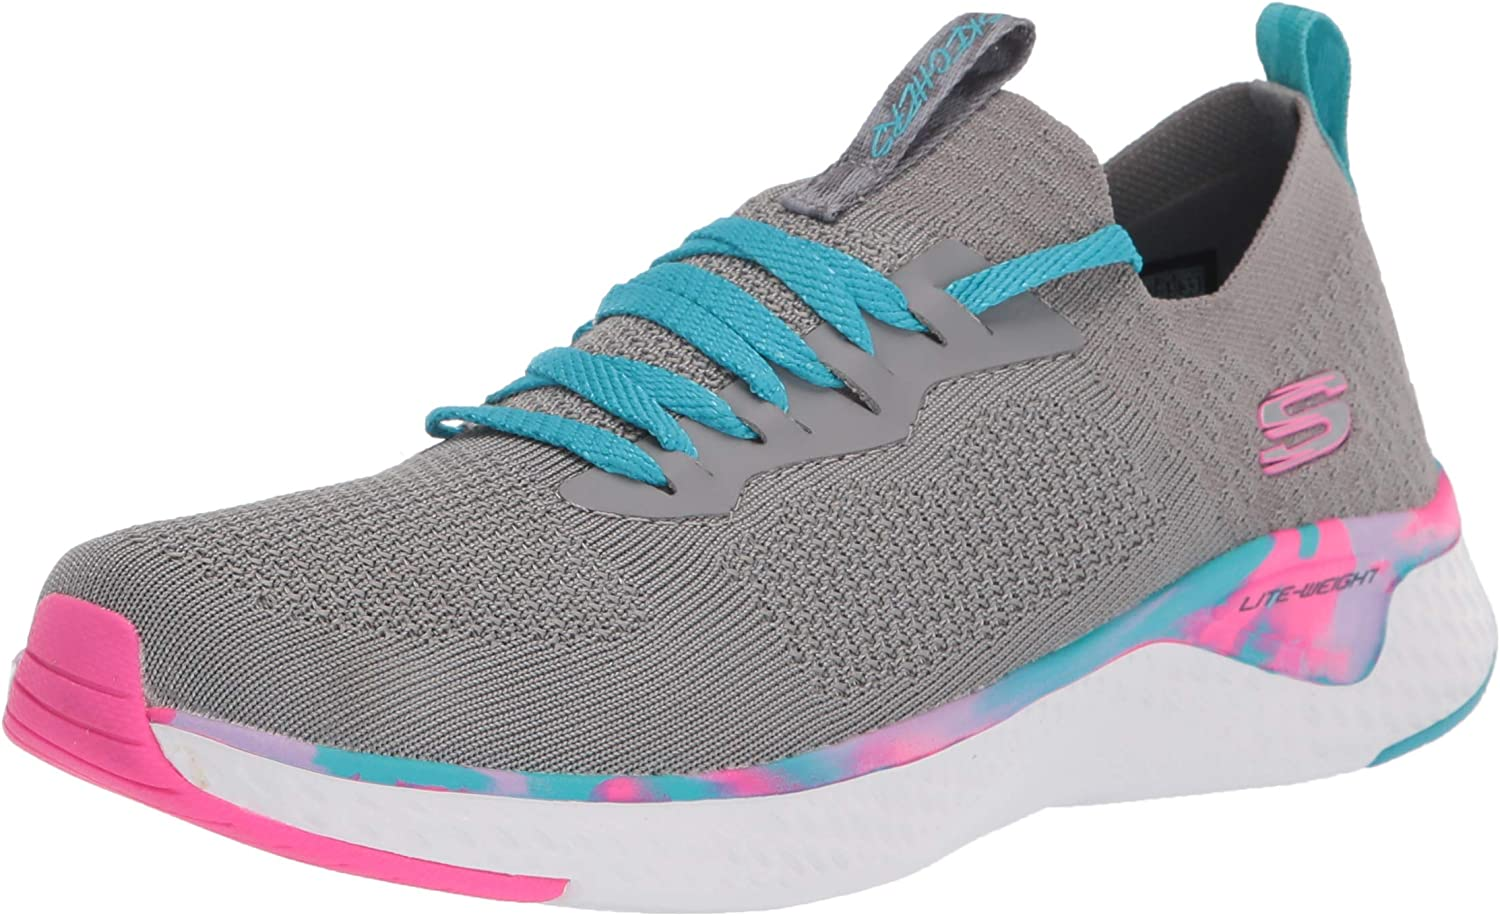 Skechers Unisex-Child Solar Max Challenge the lowest price of Japan 42% OFF Fuse Sneaker